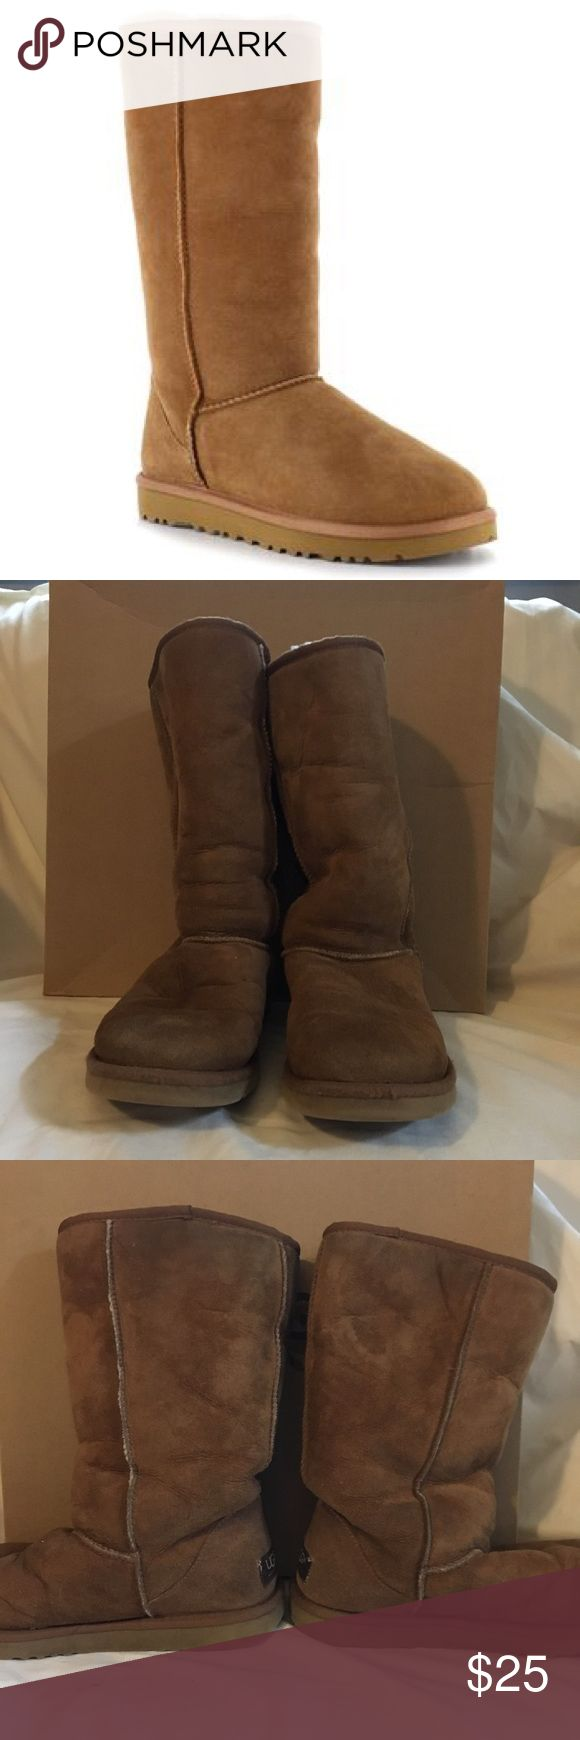 Ugg Classic Tall 5815 W's 7 In decent condition. Some signs of wear on the outside of the uggs and sole heels. Inside heel and sole show real signs of wear. Pretreated before wearing. Comes with the original box. UGG Shoes